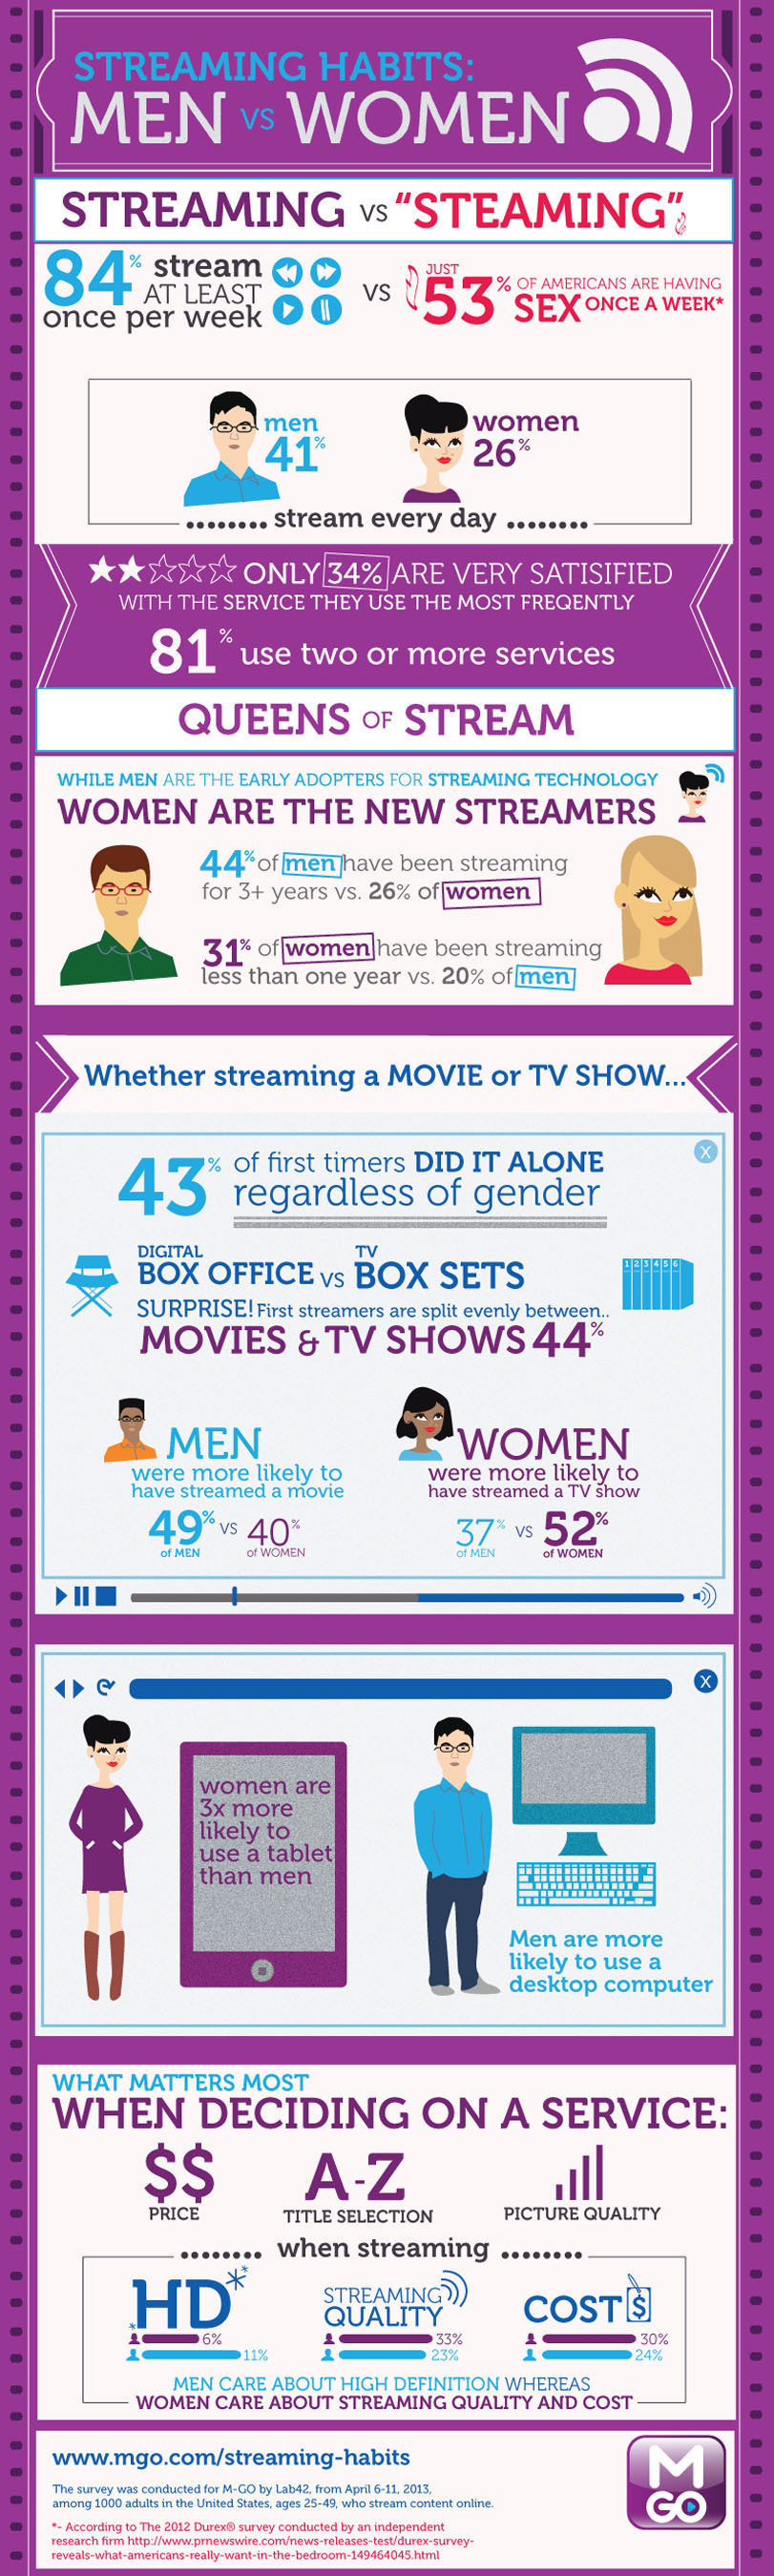 Men Vs. Women: Streaming Media Habits By Gender